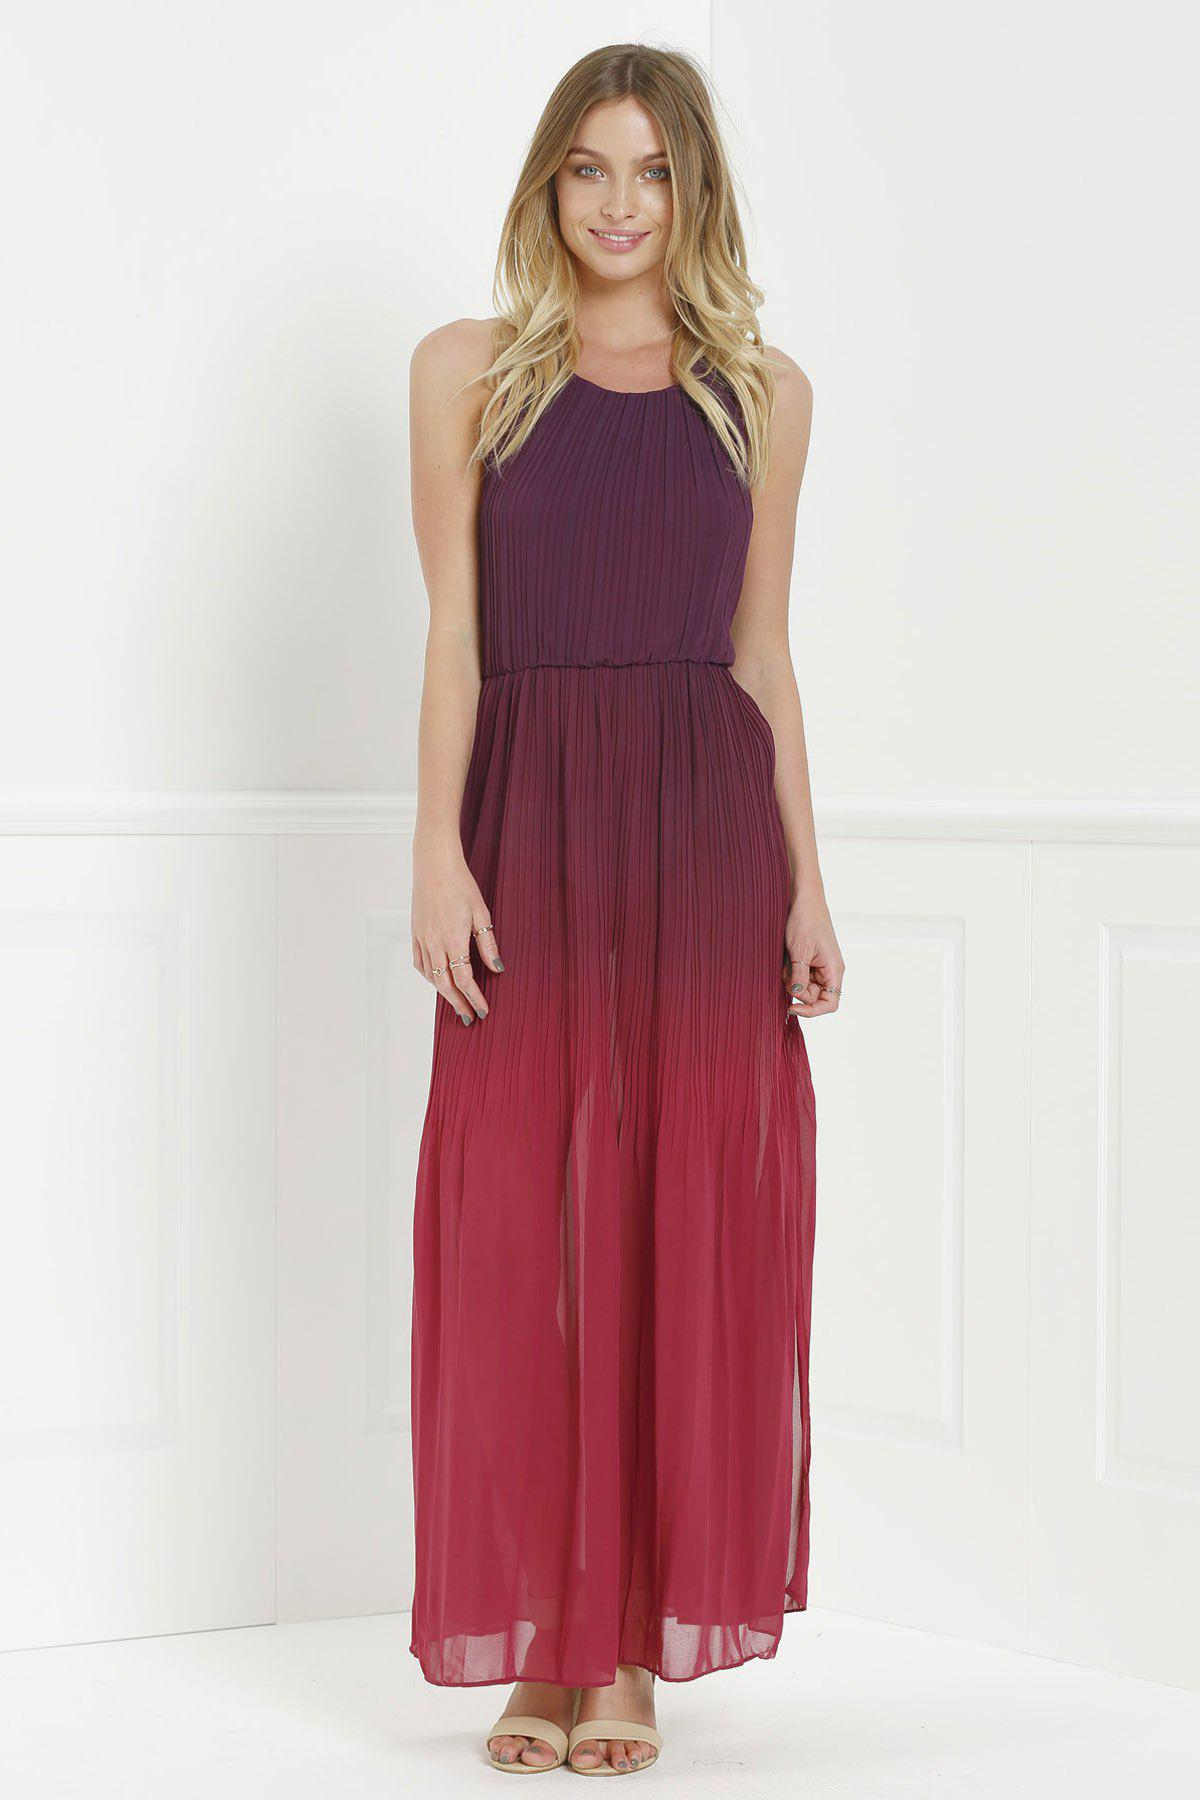 Red Elegant Halter Neck Sleeveless Ombre Color High Slit